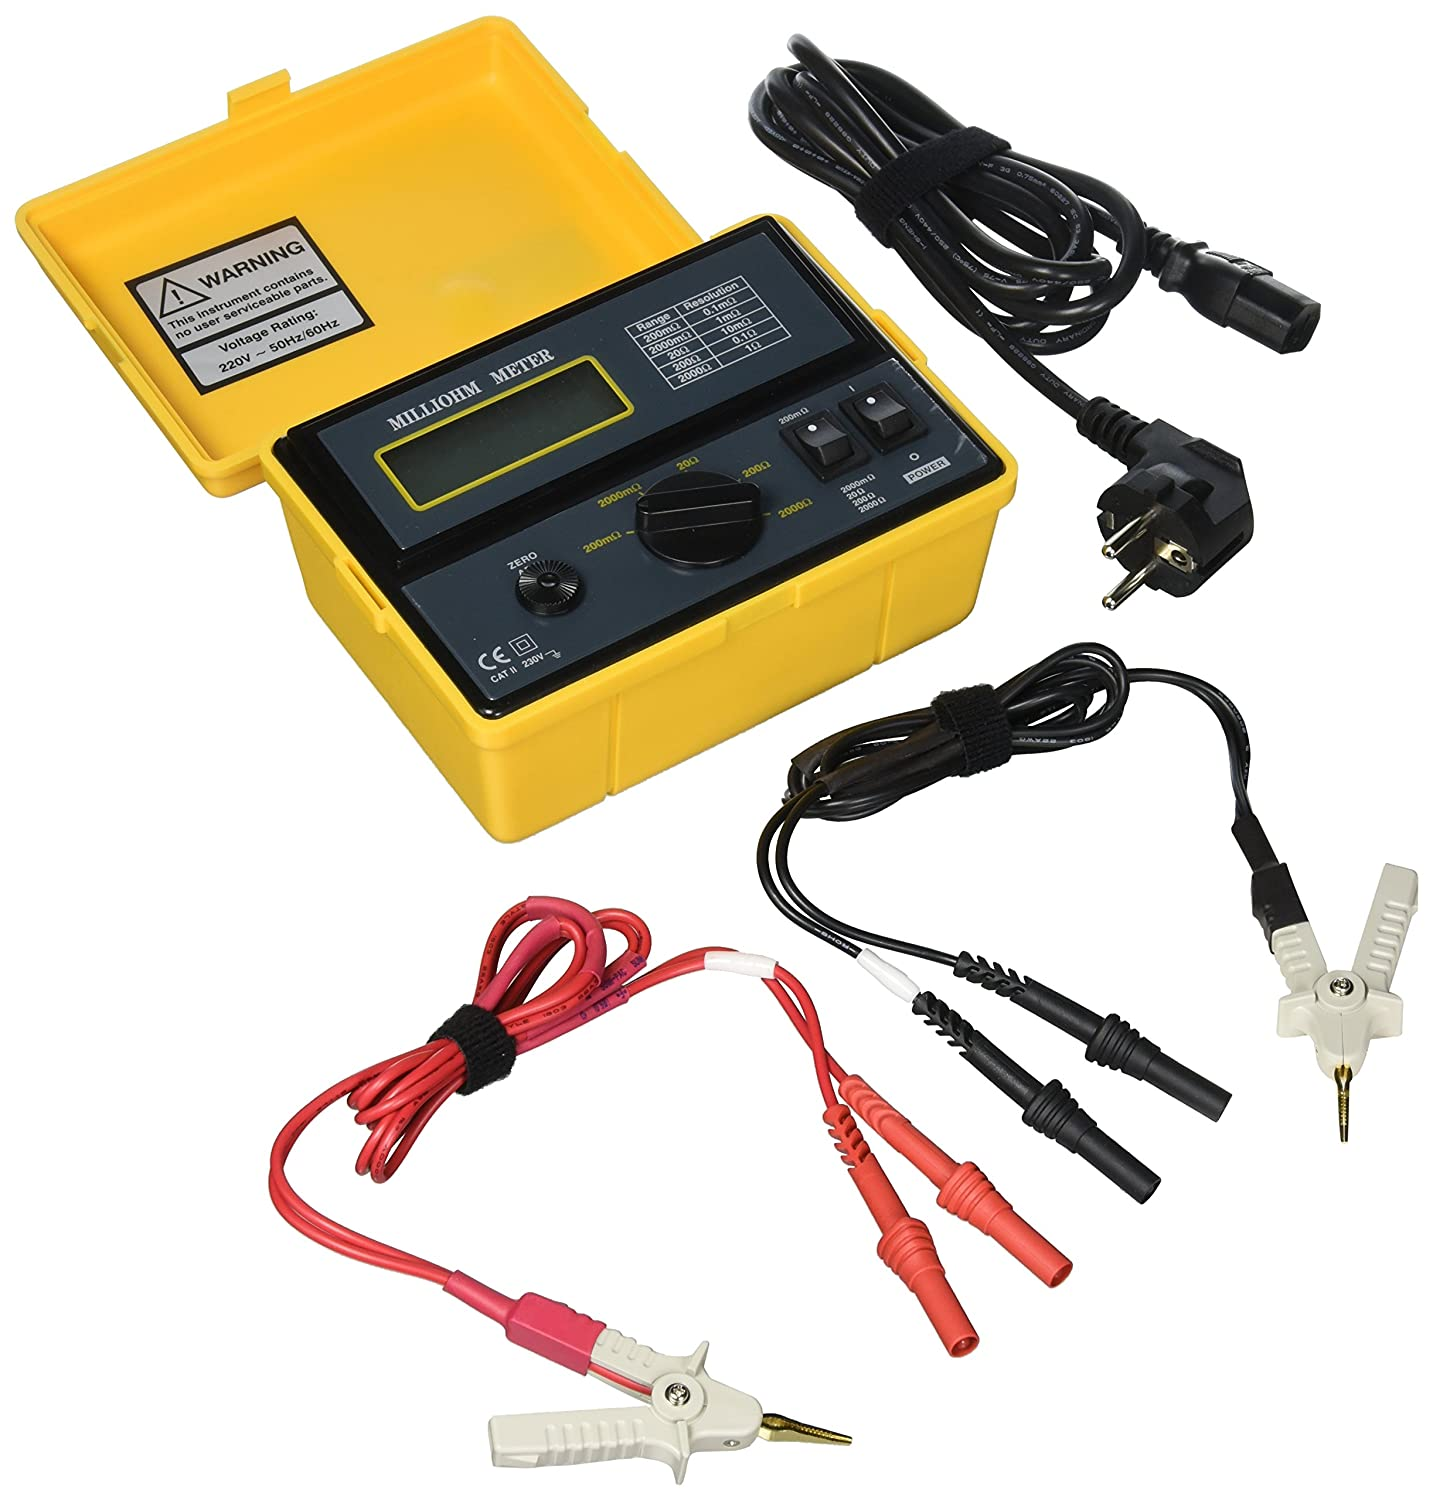 Extech 380462 Precision 220vac Milliohm Meter Voltage Testers How To Build Operated Remote Tester